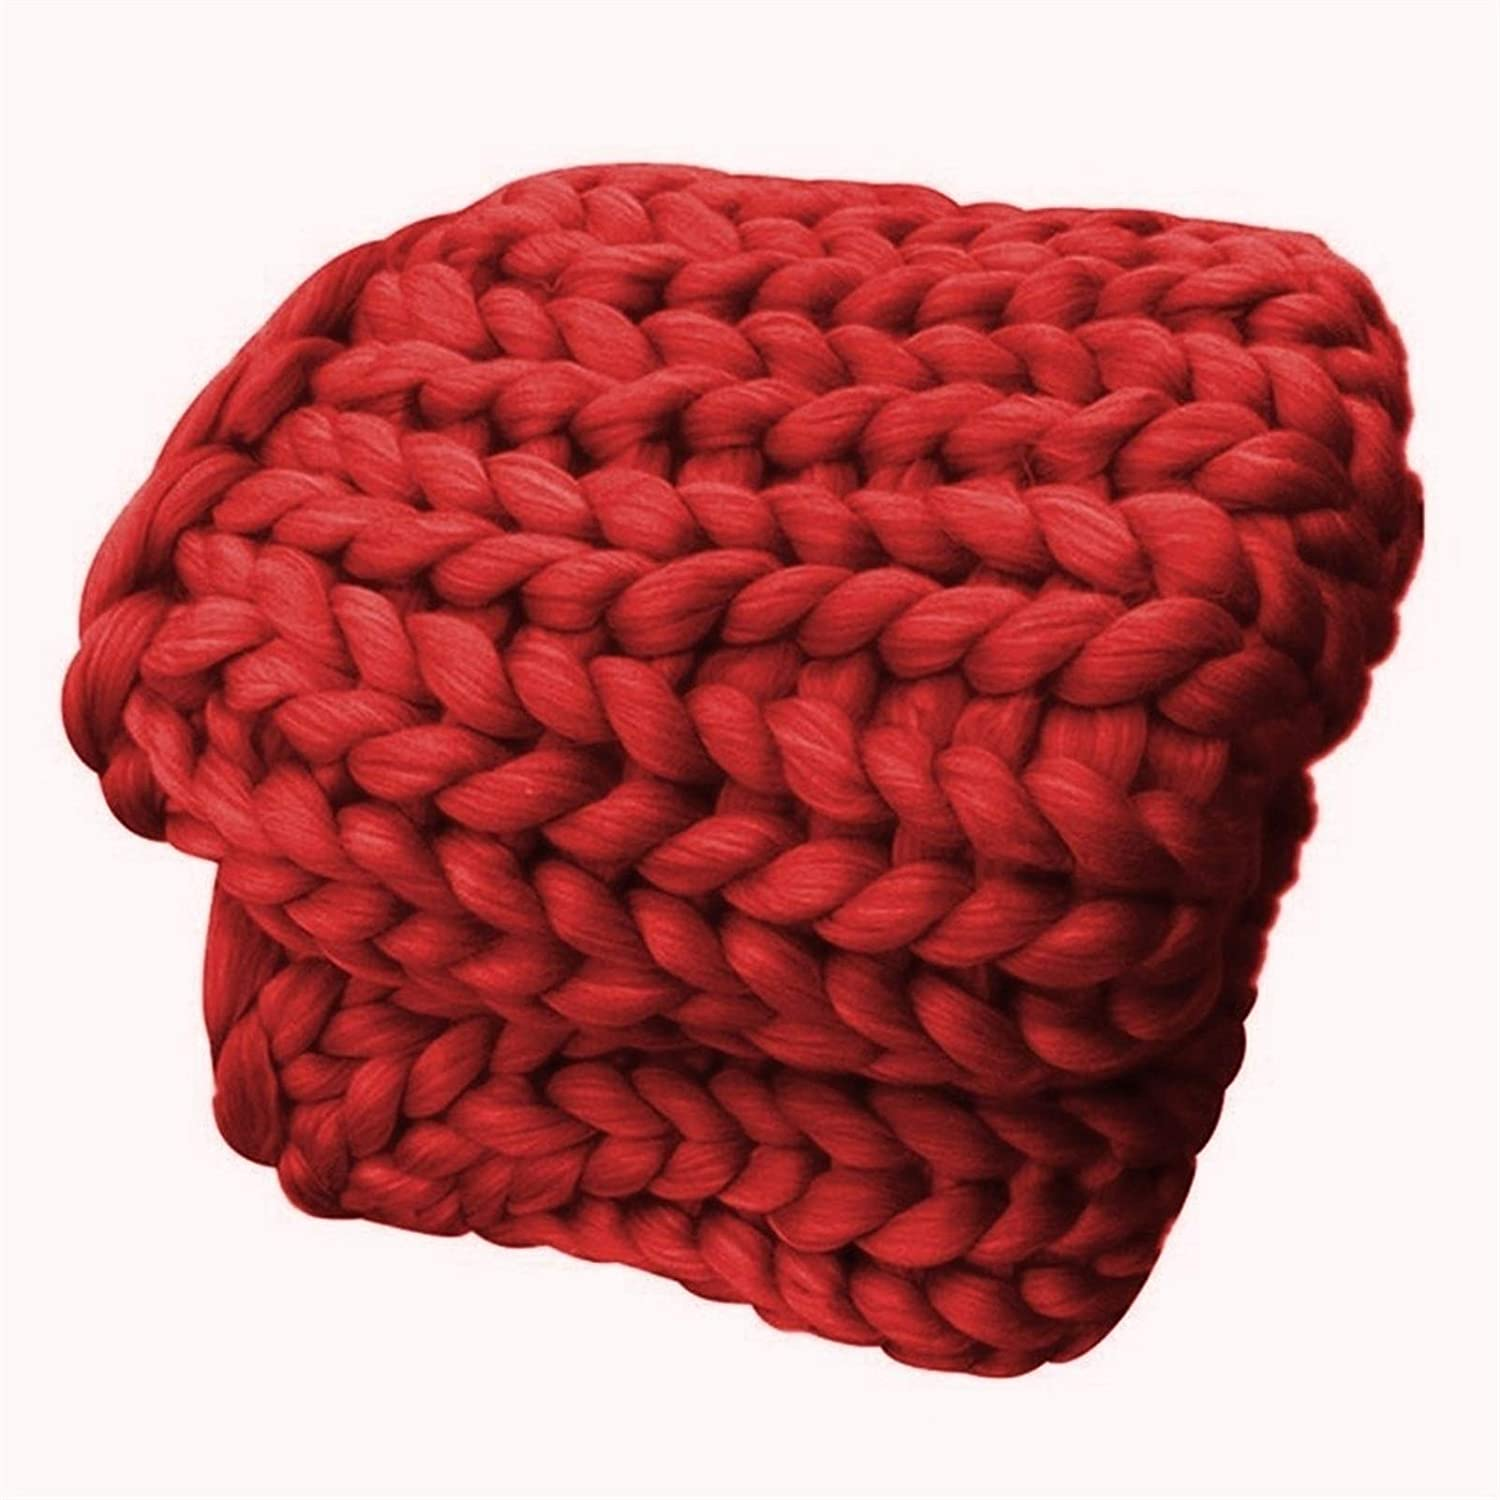 Don't miss the campaign YXYH Chunky Knit Blanket 40% OFF Cheap Sale Warm Deco Knitted Home Yarn for